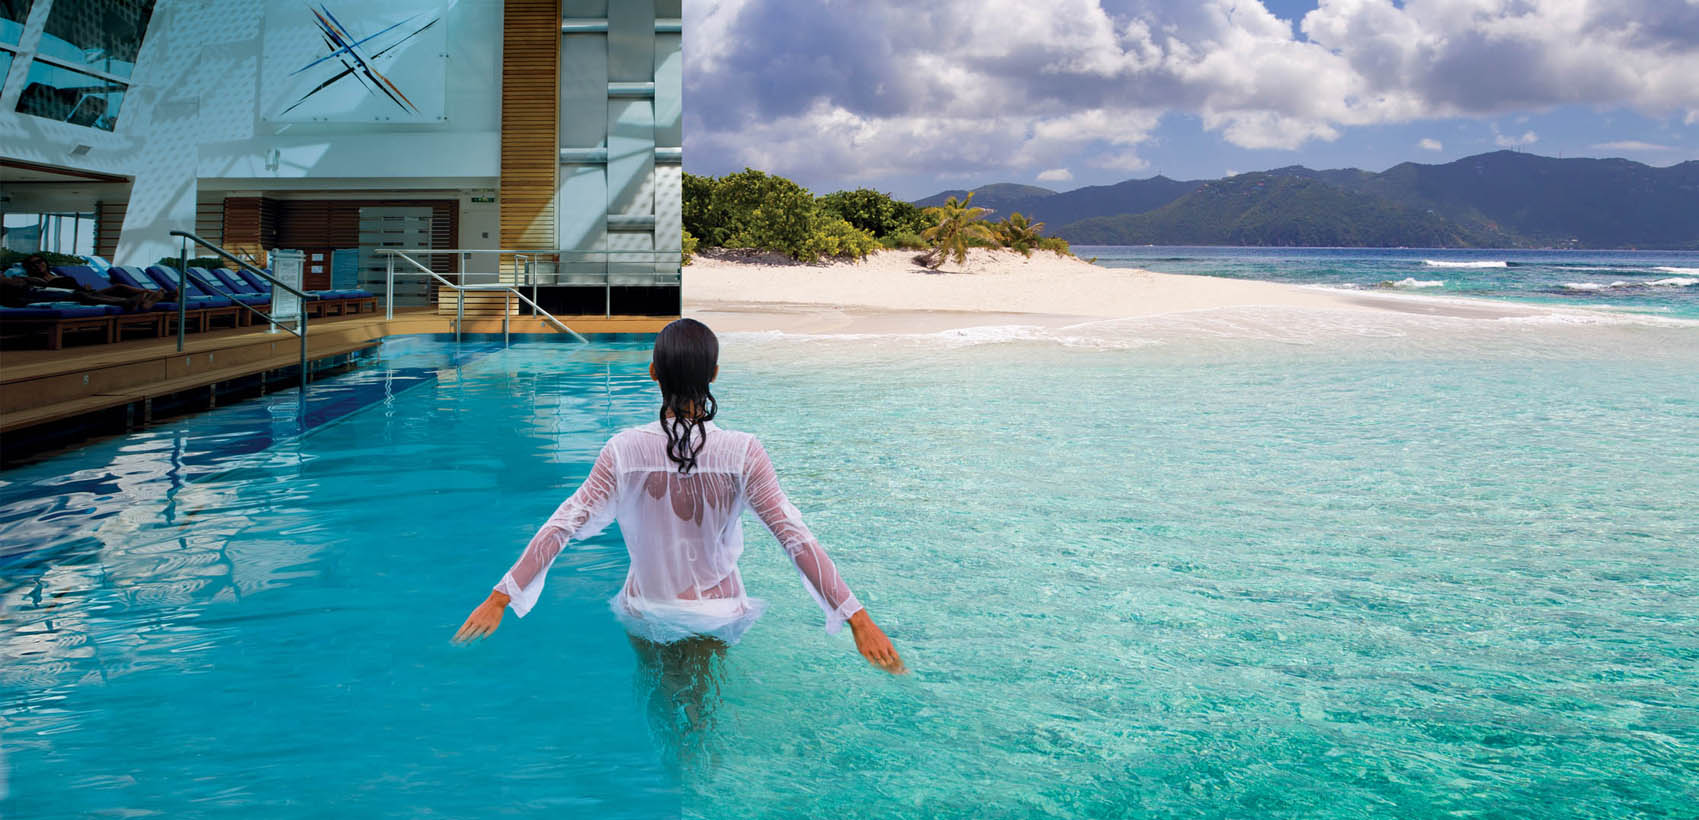 Season of Savings with Celebrity Cruise